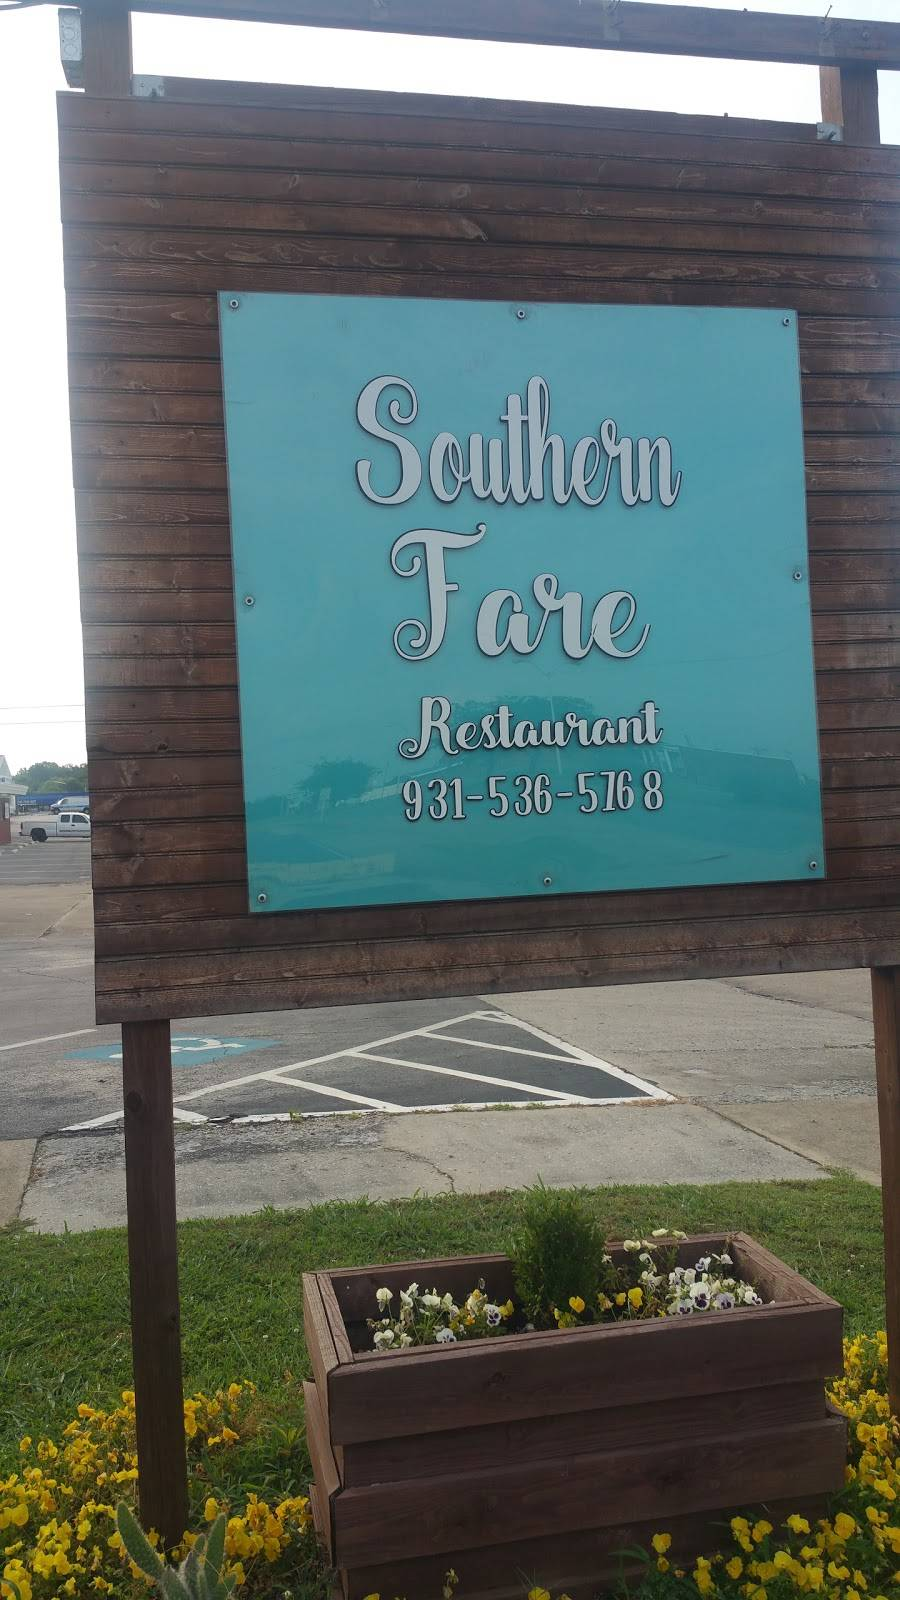 Southern Fare | restaurant | 210 Lane Pkwy, Shelbyville, TN 37160, USA | 9315365768 OR +1 931-536-5768